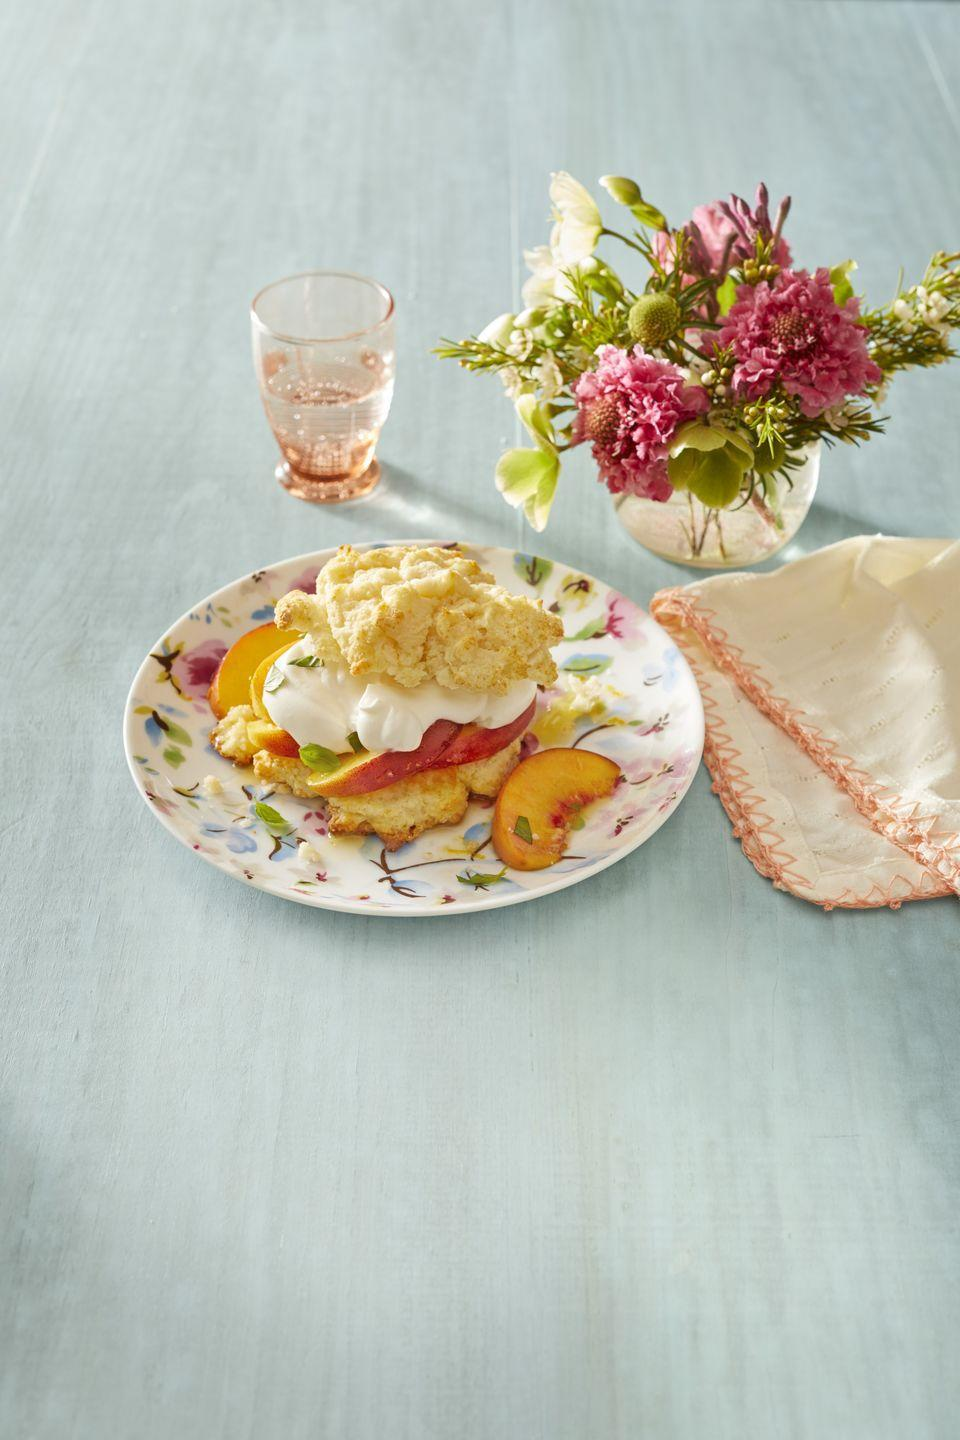 """<p>You've had strawberry shortcake—now give this peach version a try! The basil adds extra fresh flavor. </p><p><a href=""""https://www.thepioneerwoman.com/food-cooking/recipes/a32096313/peaches-and-cream-shortcake-basil-recipe/"""" rel=""""nofollow noopener"""" target=""""_blank"""" data-ylk=""""slk:Get Ree's recipe."""" class=""""link rapid-noclick-resp""""><strong>Get Ree's recipe.</strong></a></p><p><a class=""""link rapid-noclick-resp"""" href=""""https://go.redirectingat.com?id=74968X1596630&url=https%3A%2F%2Fwww.walmart.com%2Fsearch%2F%3Fquery%3Dpioneer%2Bwoman%2Bplates&sref=https%3A%2F%2Fwww.thepioneerwoman.com%2Ffood-cooking%2Frecipes%2Fg36382592%2Fpeach-desserts%2F"""" rel=""""nofollow noopener"""" target=""""_blank"""" data-ylk=""""slk:SHOP PLATES"""">SHOP PLATES</a></p>"""